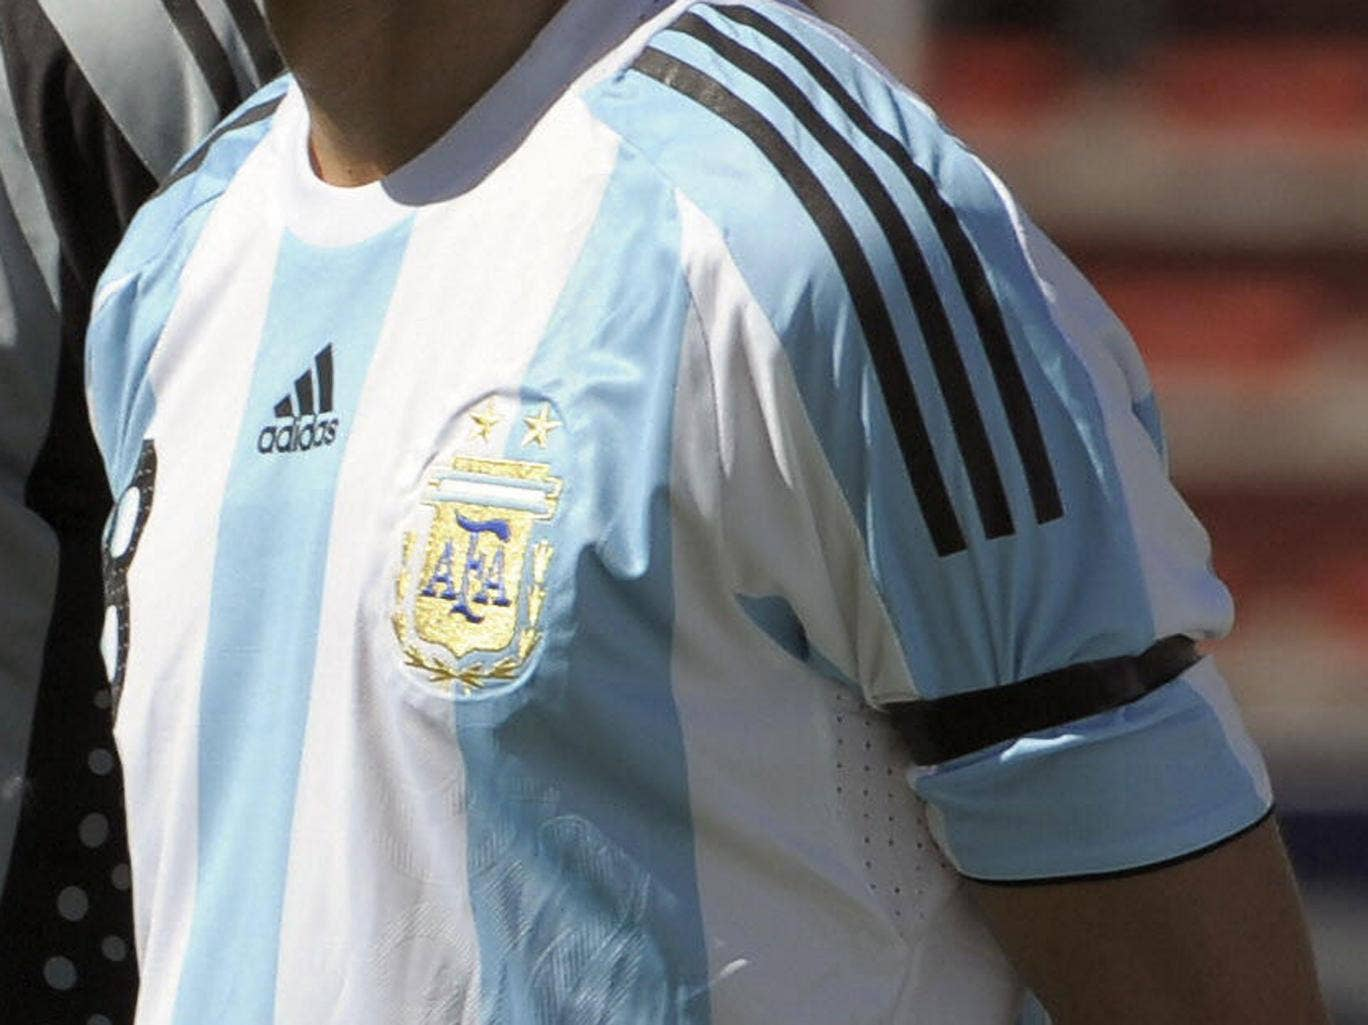 The Argentina team will wear black armbands for tonight's World Cup semi-final with the Netherlands